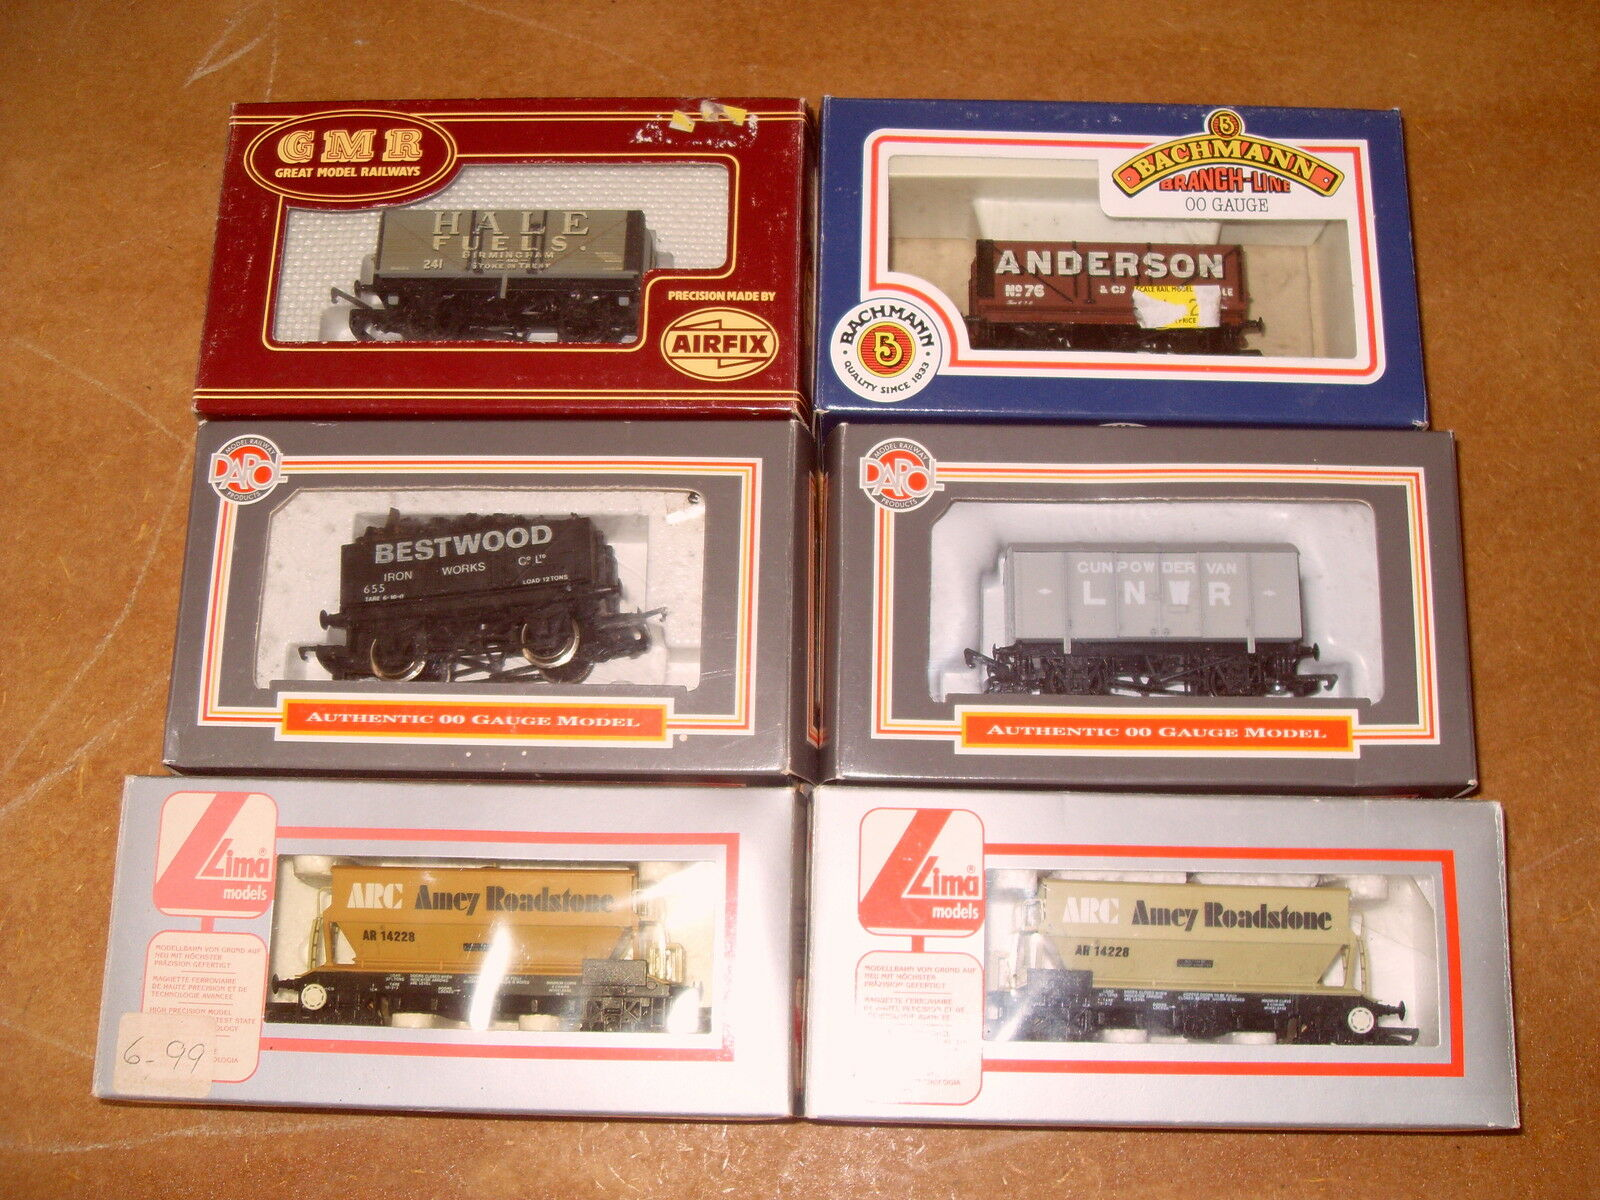 Job Lot Of 6 OO Gauge Wagons - Lima   Dapol   Bachmann   Airfix - As Photo's